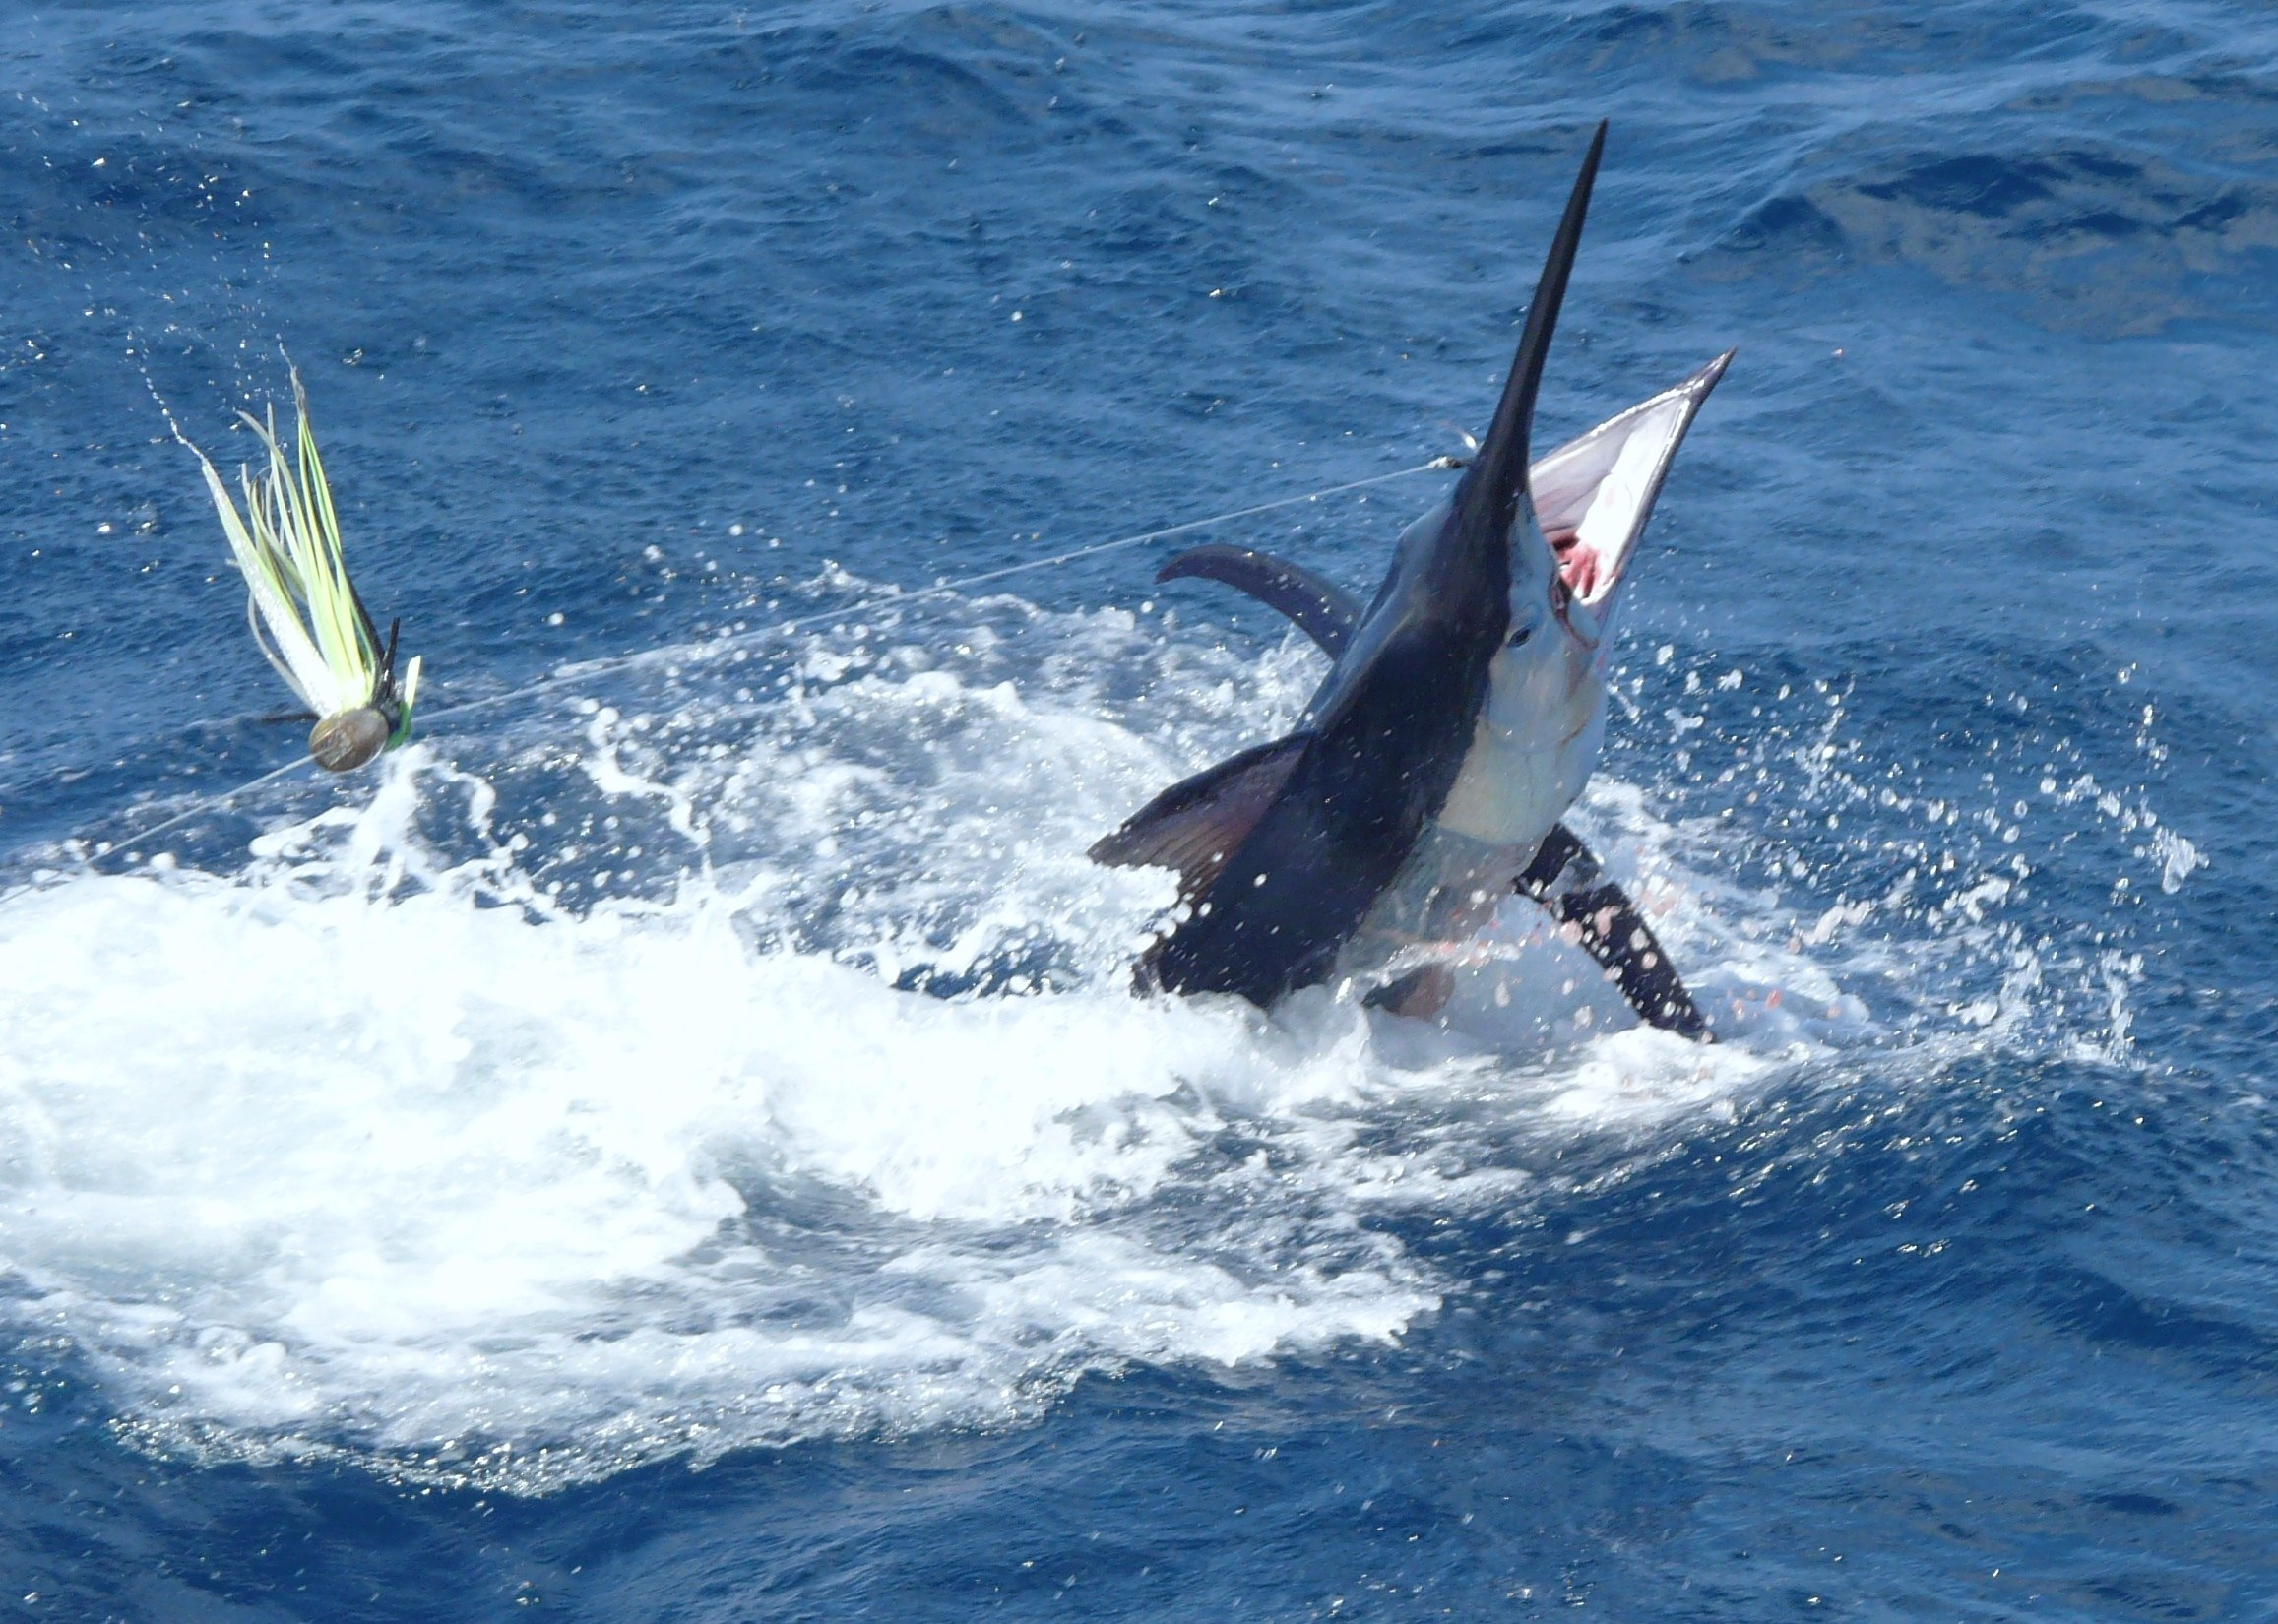 Go Big Game Fishing and catch your first Marlin